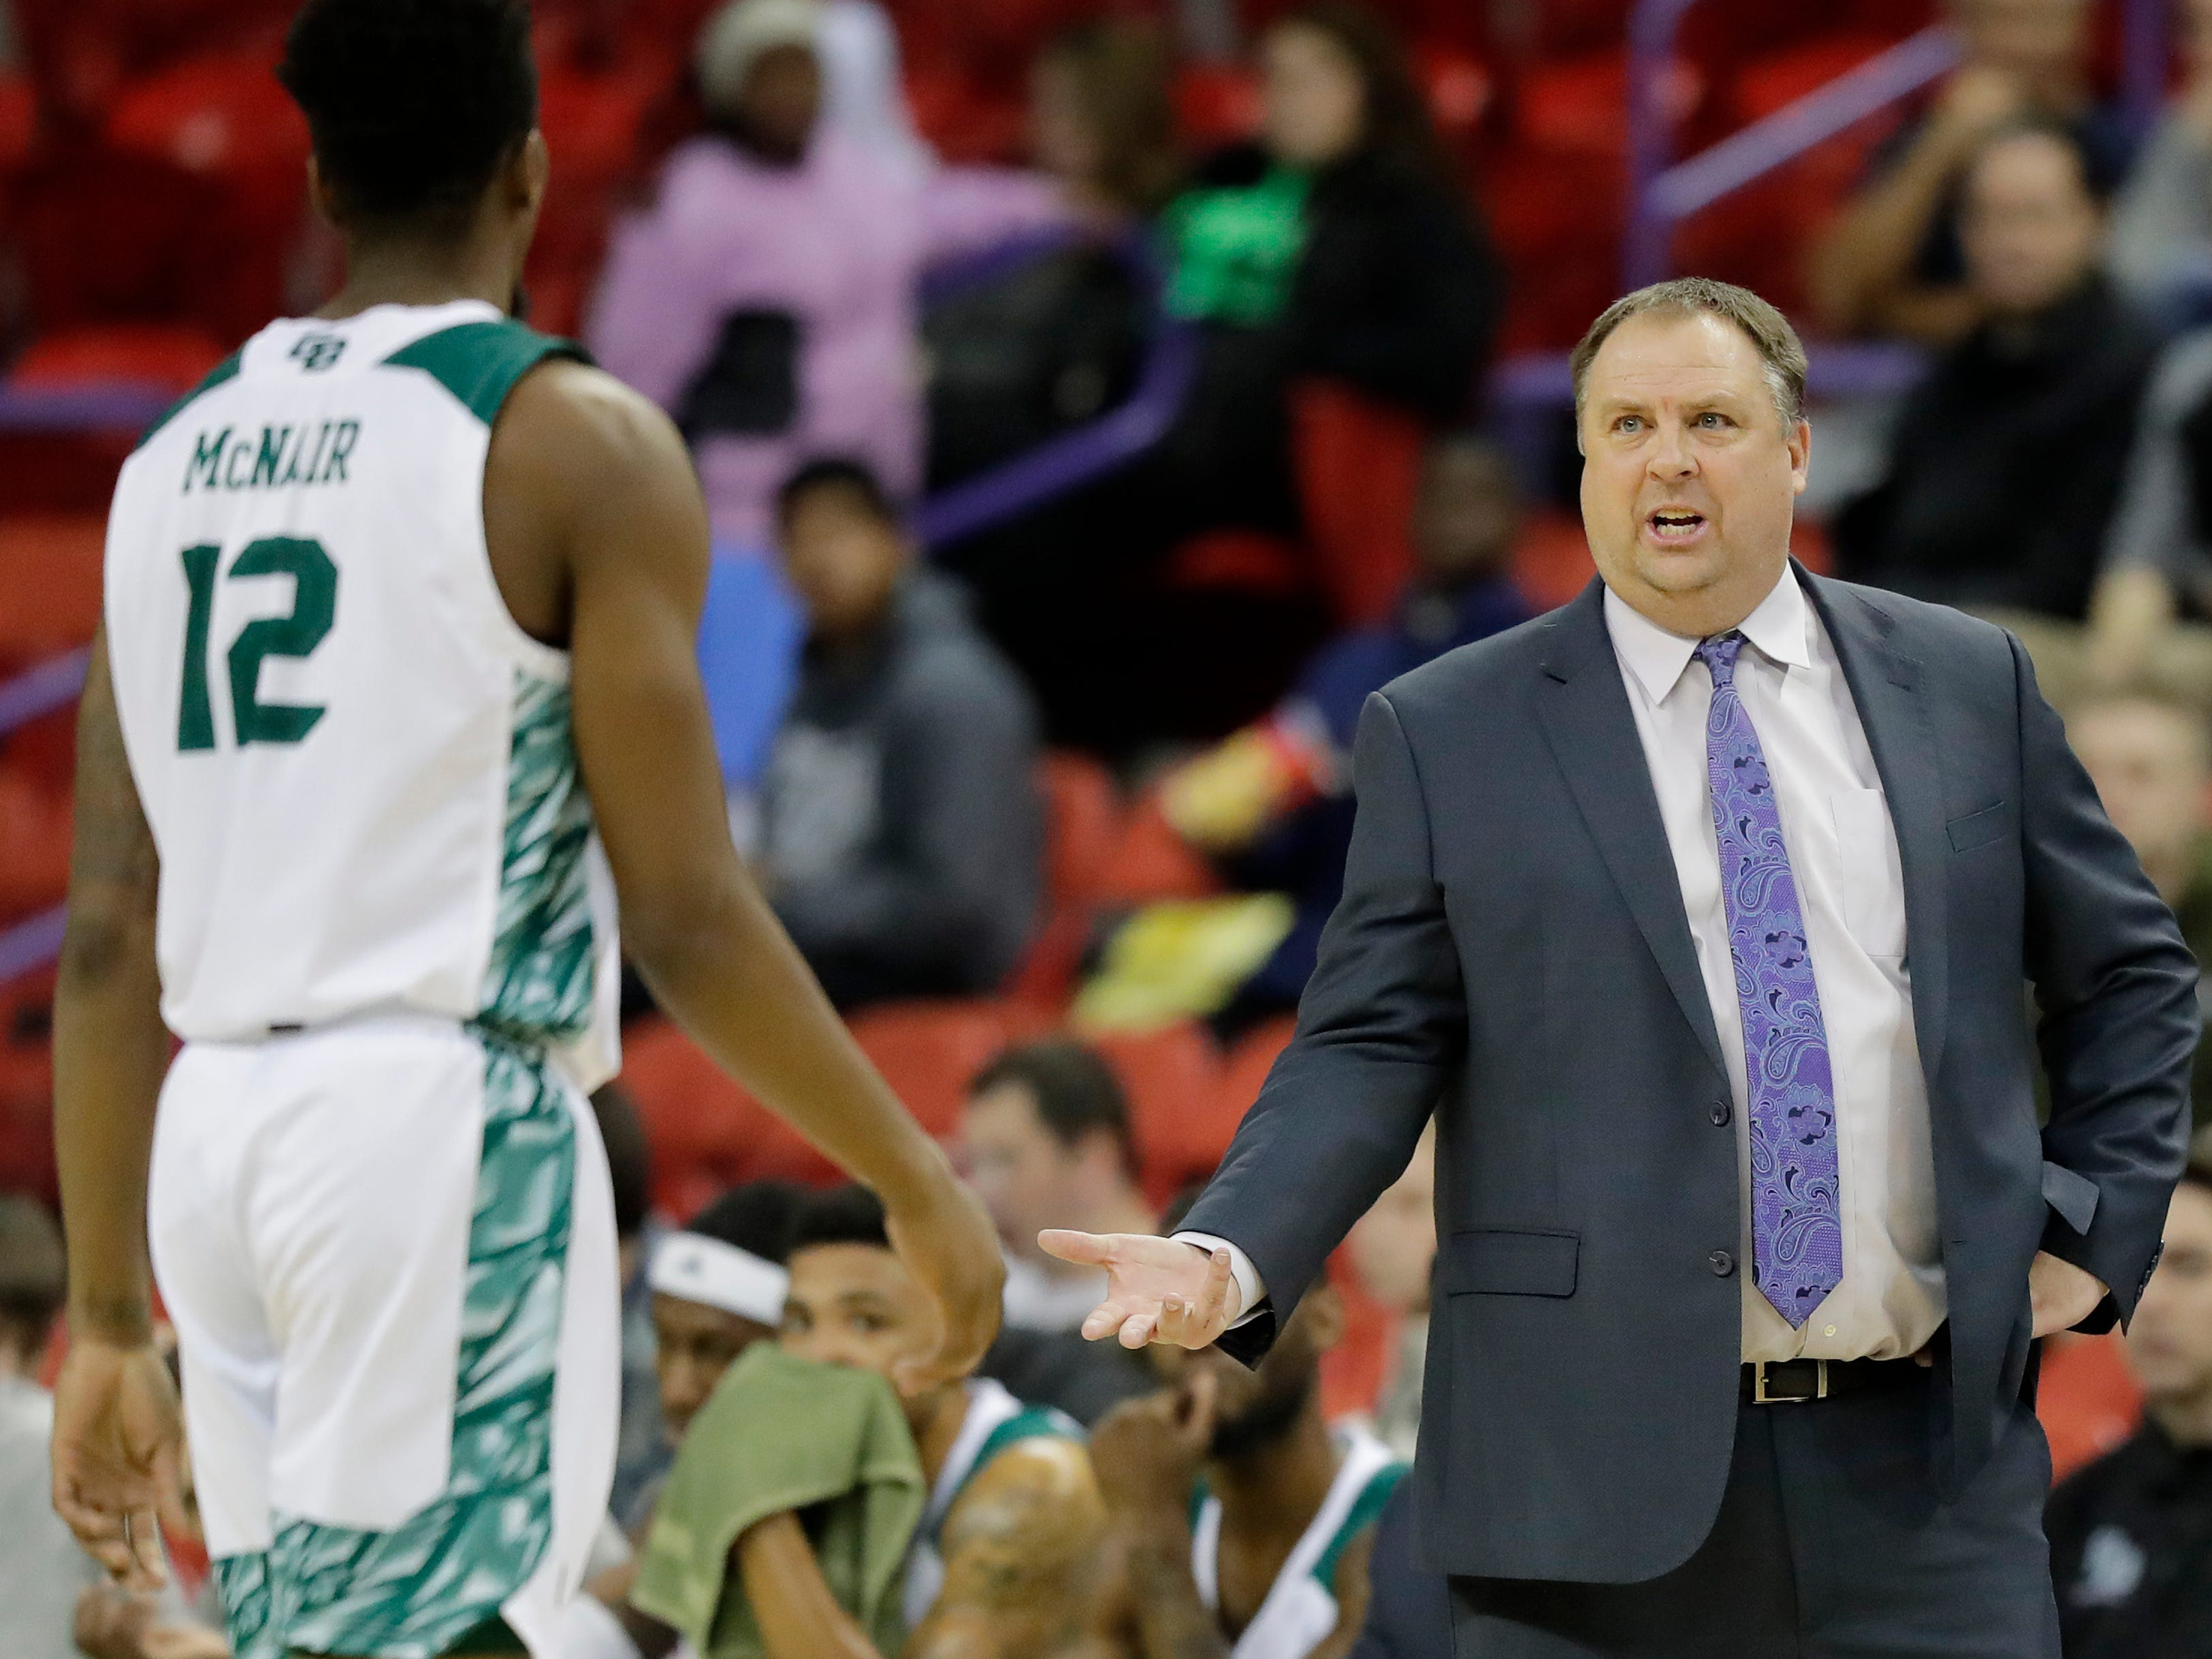 Green Bay Phoenix head coach Linc Darner talks to forward Josh McNair (12) in a NCAA basketball game at the Resch Center on Saturday, December 1, 2018 in Ashwaubenon, Wis.